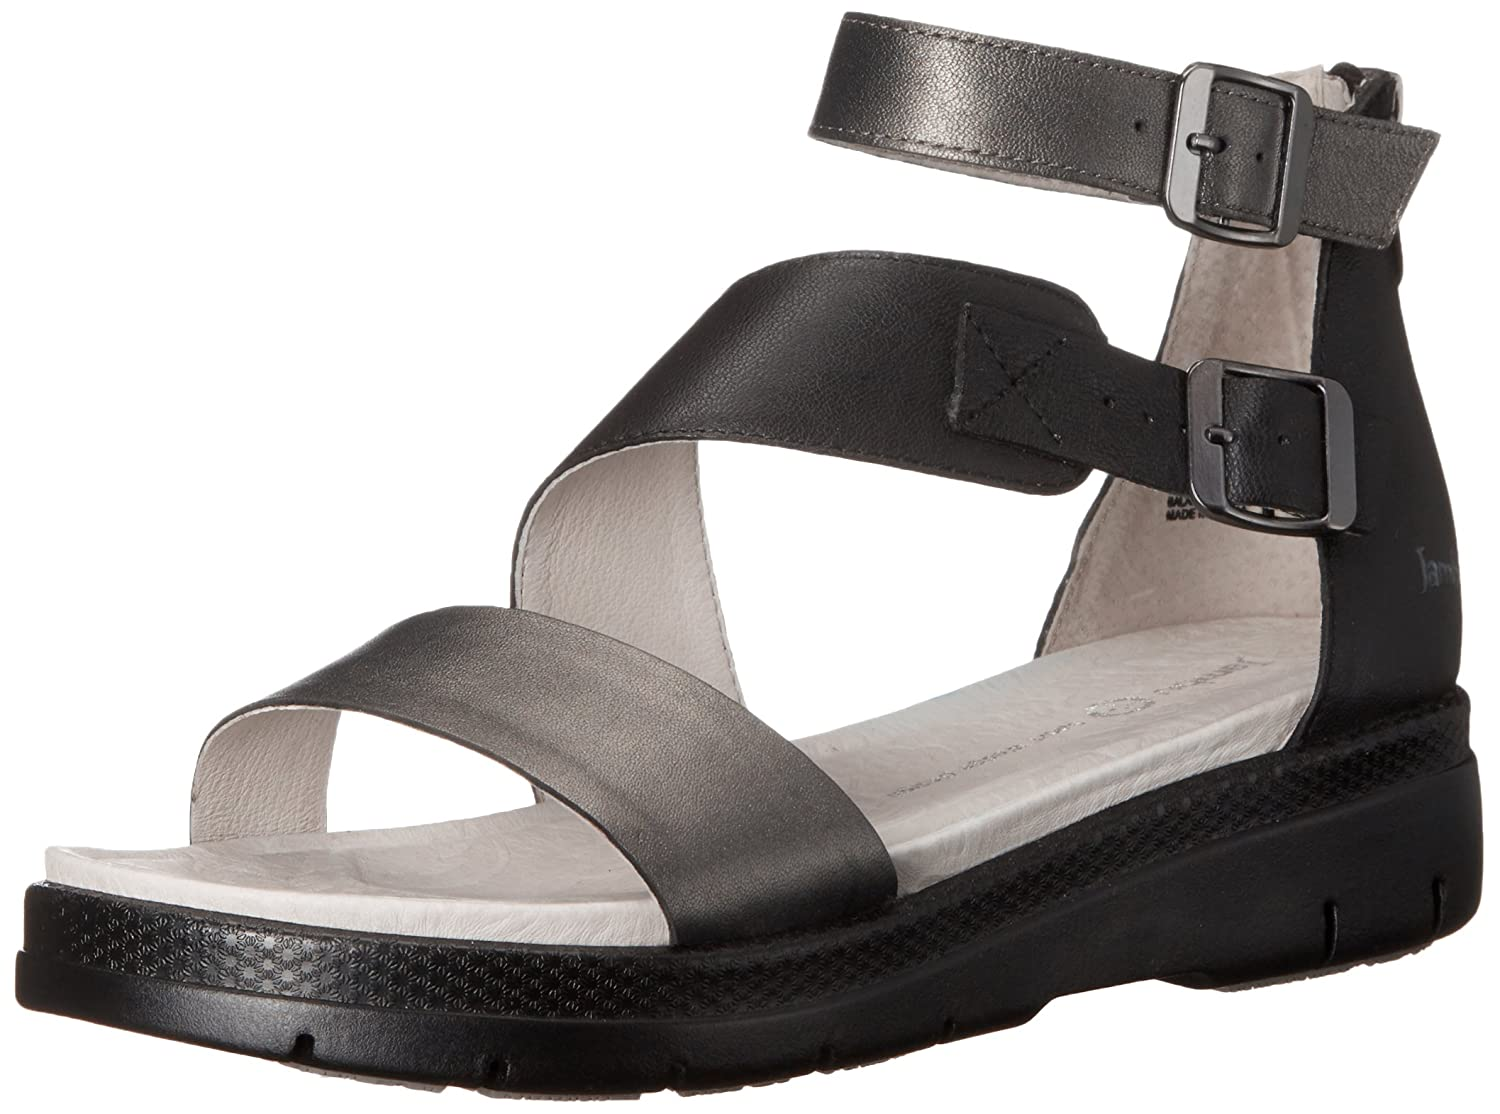 Jambu Women's Cape May Wedge Sandal B005AFFYZQ 6 B(M) US|Gunmetal Black